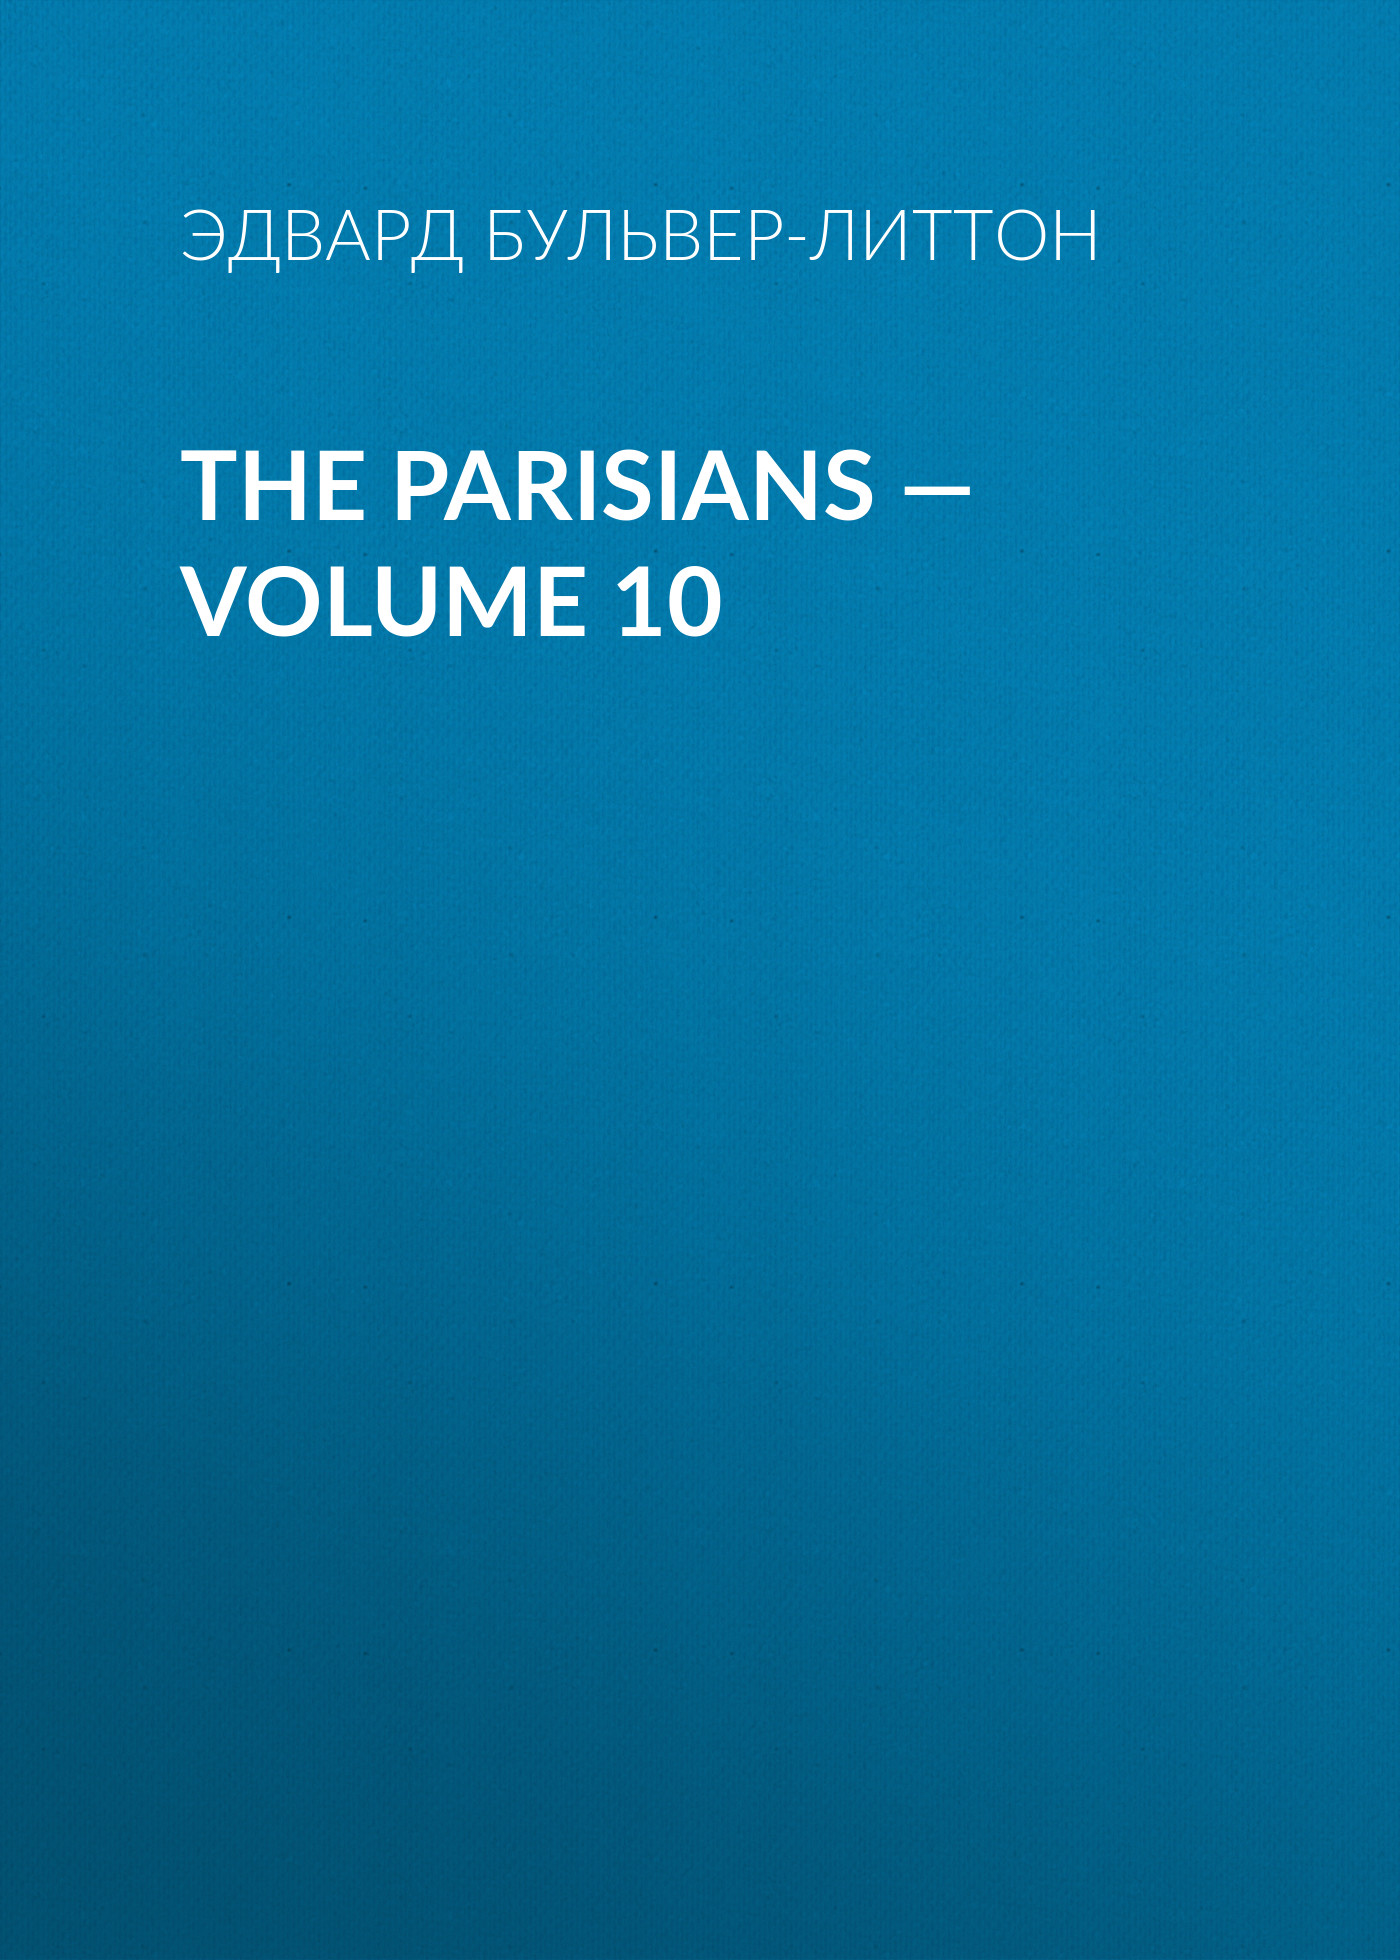 The Parisians — Volume 10